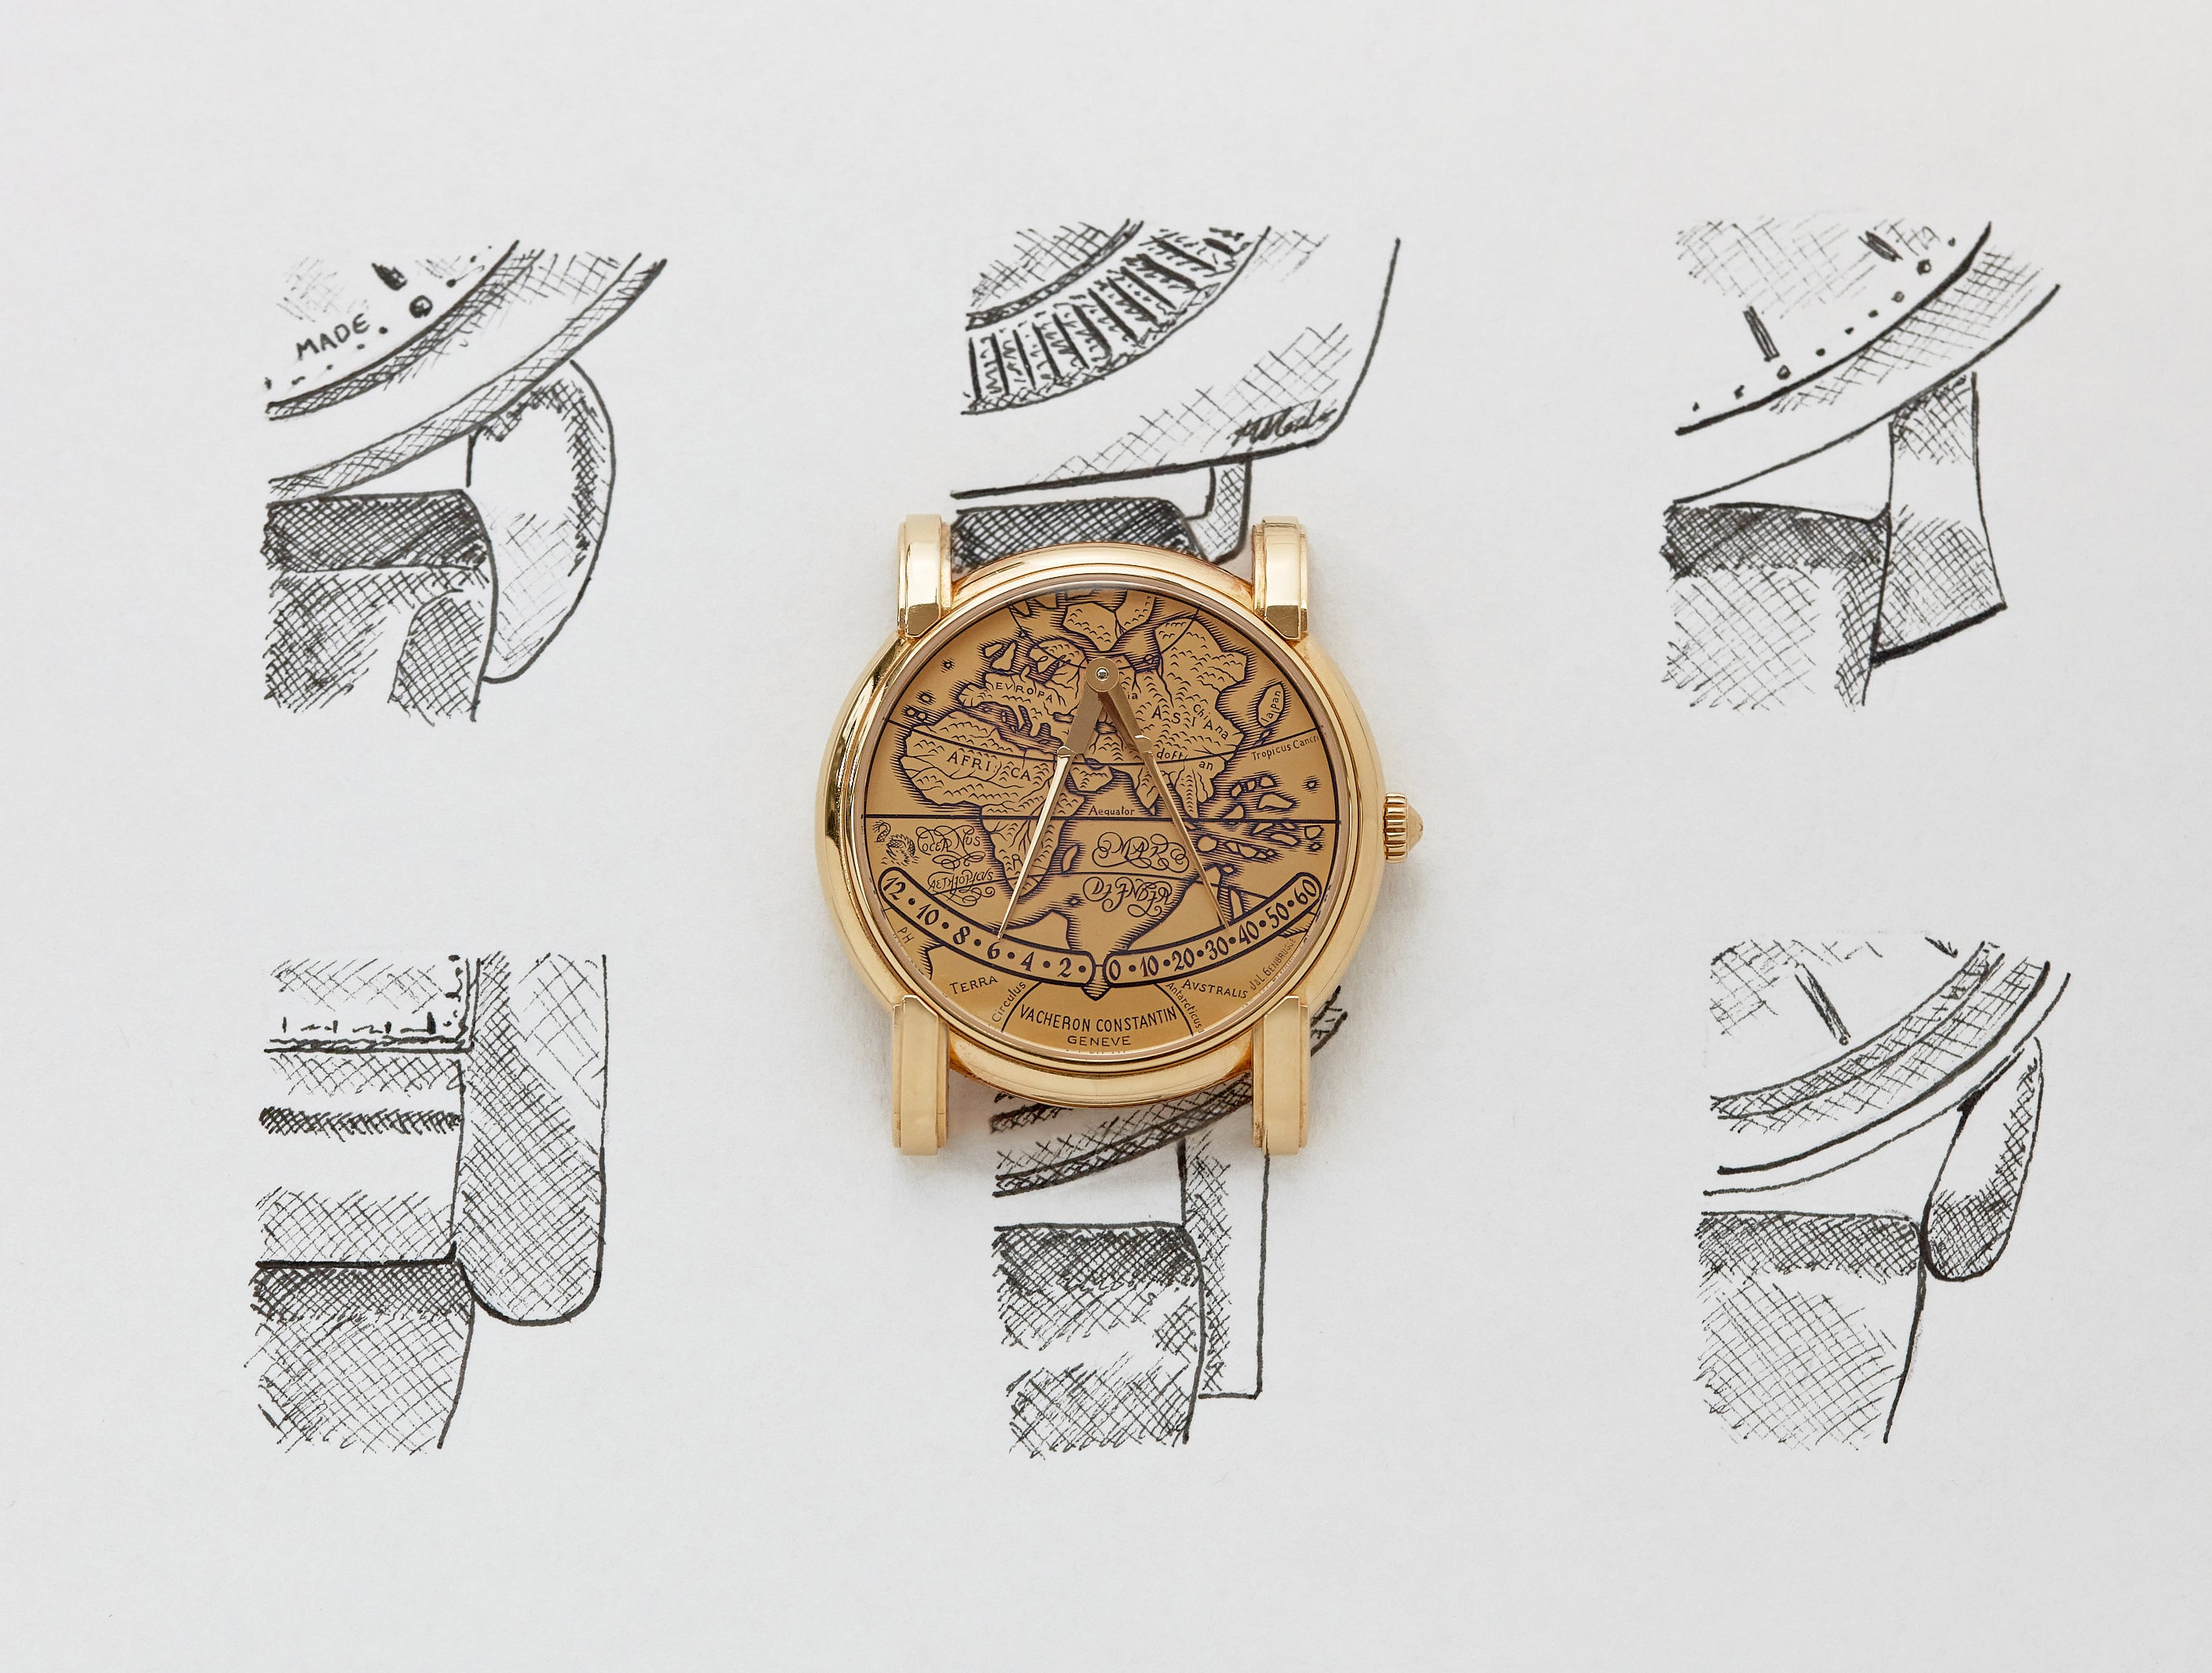 Vacheron Constantin Mercator in yellow gold on lug illustrations for A Collected Man London